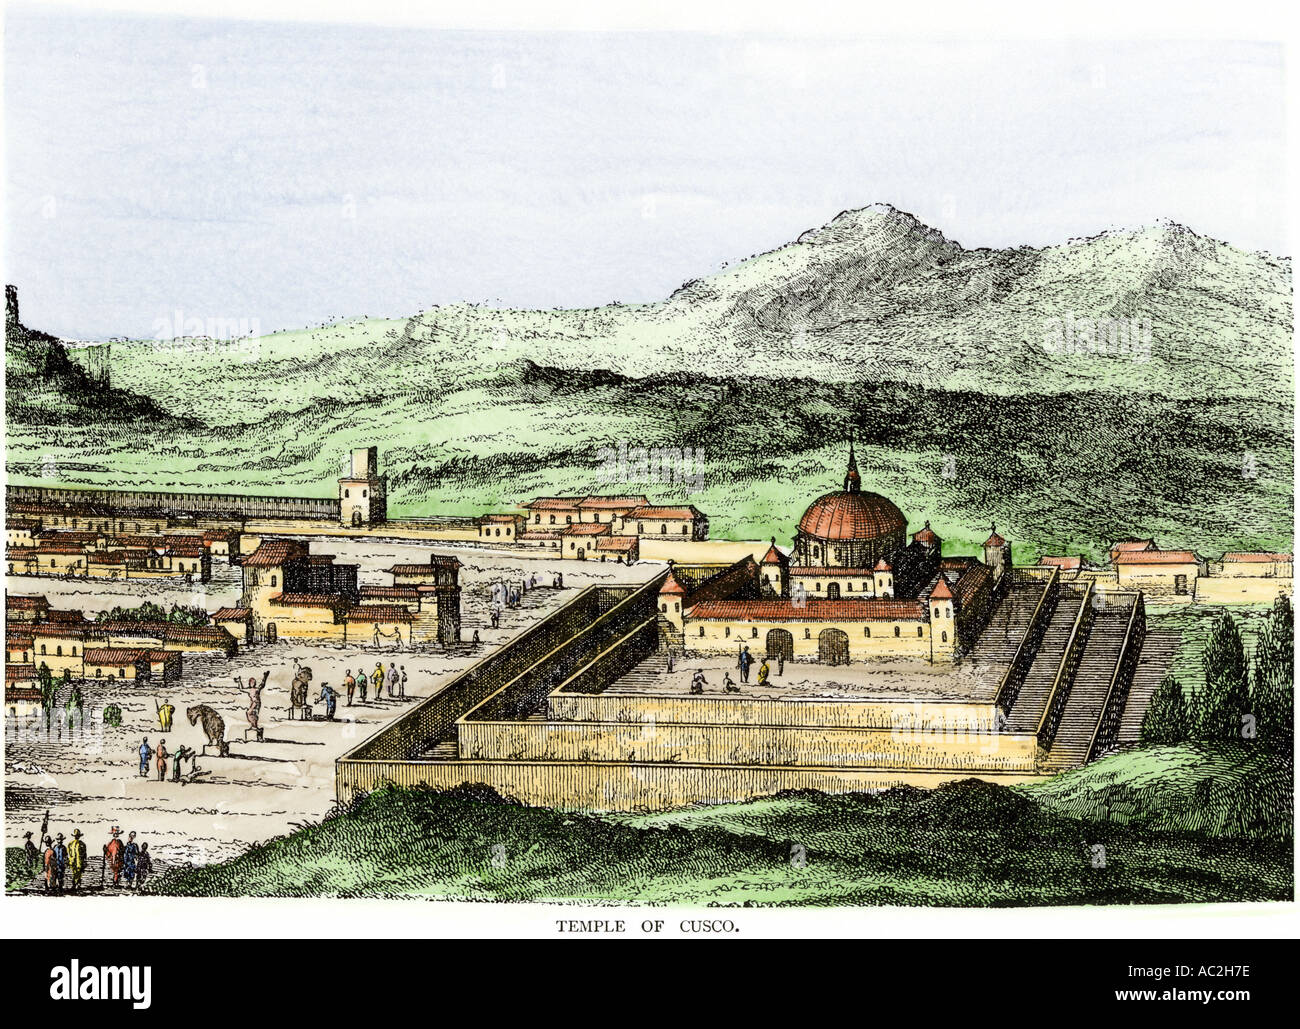 Incan Temple of the Sun in Cuzco Peru 1500s. Hand-colored woodcut - Stock Image